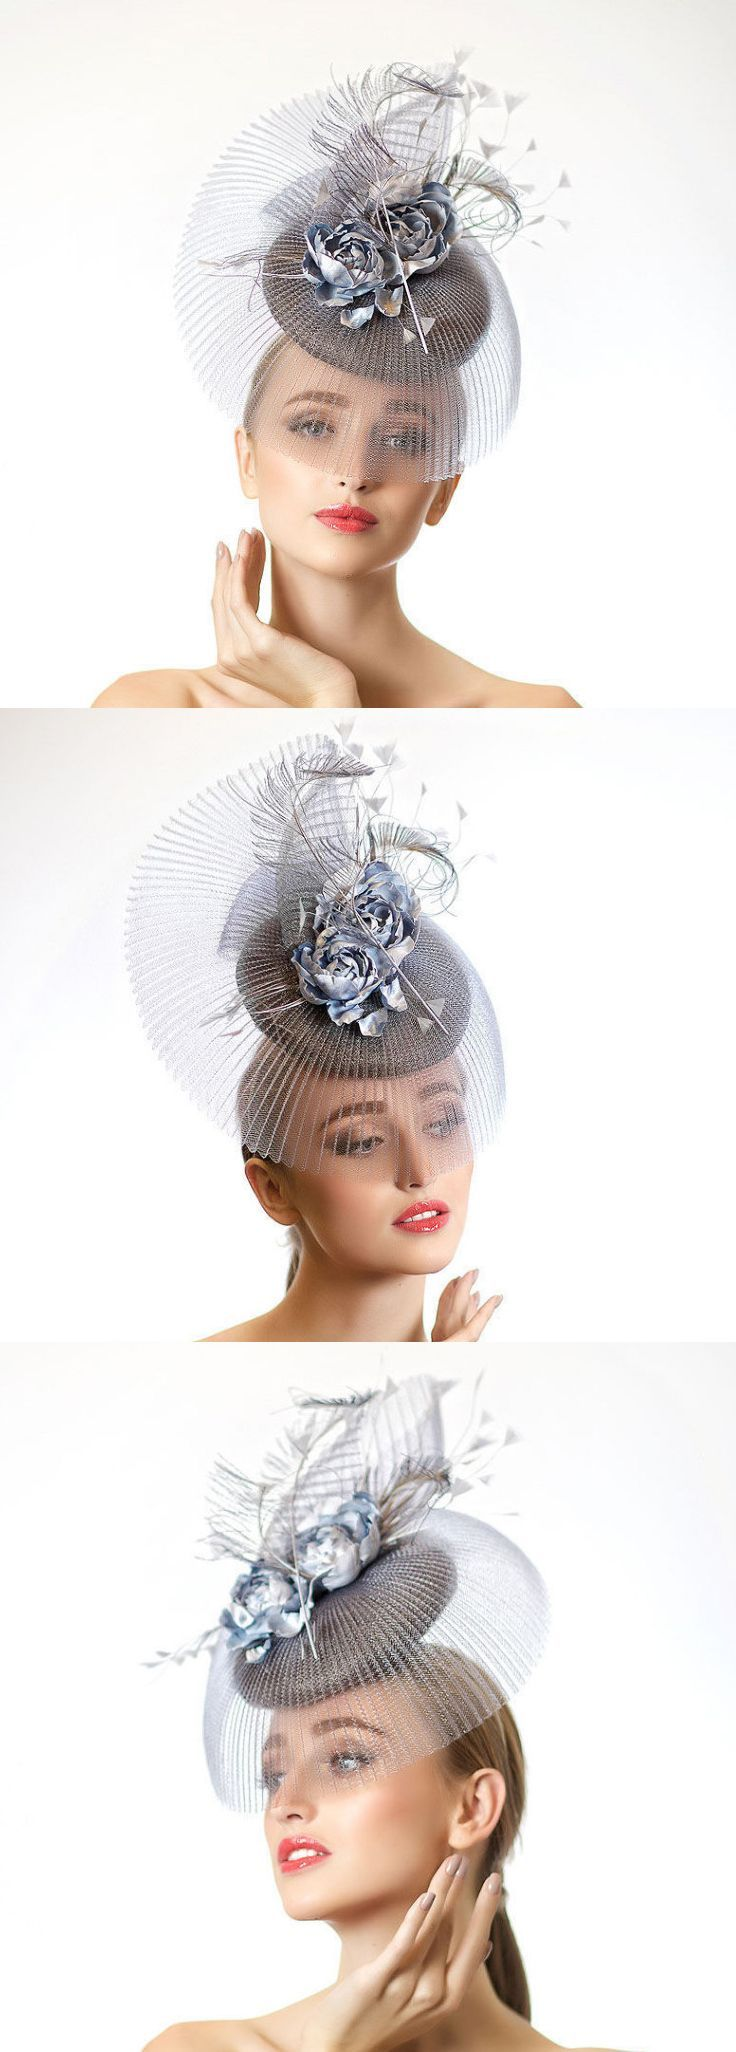 Metallic Silver Rose Hat, fascinator headpiece, with bursts of roses flowers and pleats details, this headpiece is great for spring summer racing fashion or wedding outfits. Ideas for Mother of the bride in popular color for MOB outfits. Wedding ideas + inspiration, or Kentucky Derby, Royal Ascot racing outfits. #kentuckyderby #royalascot #ascotfashion #ascothats #derbyhats #fashion #fashionista #ascot #kentuckyderbyoutfits #outfits #outfitideas #affiliatelink #etsyfinds #springfashion…